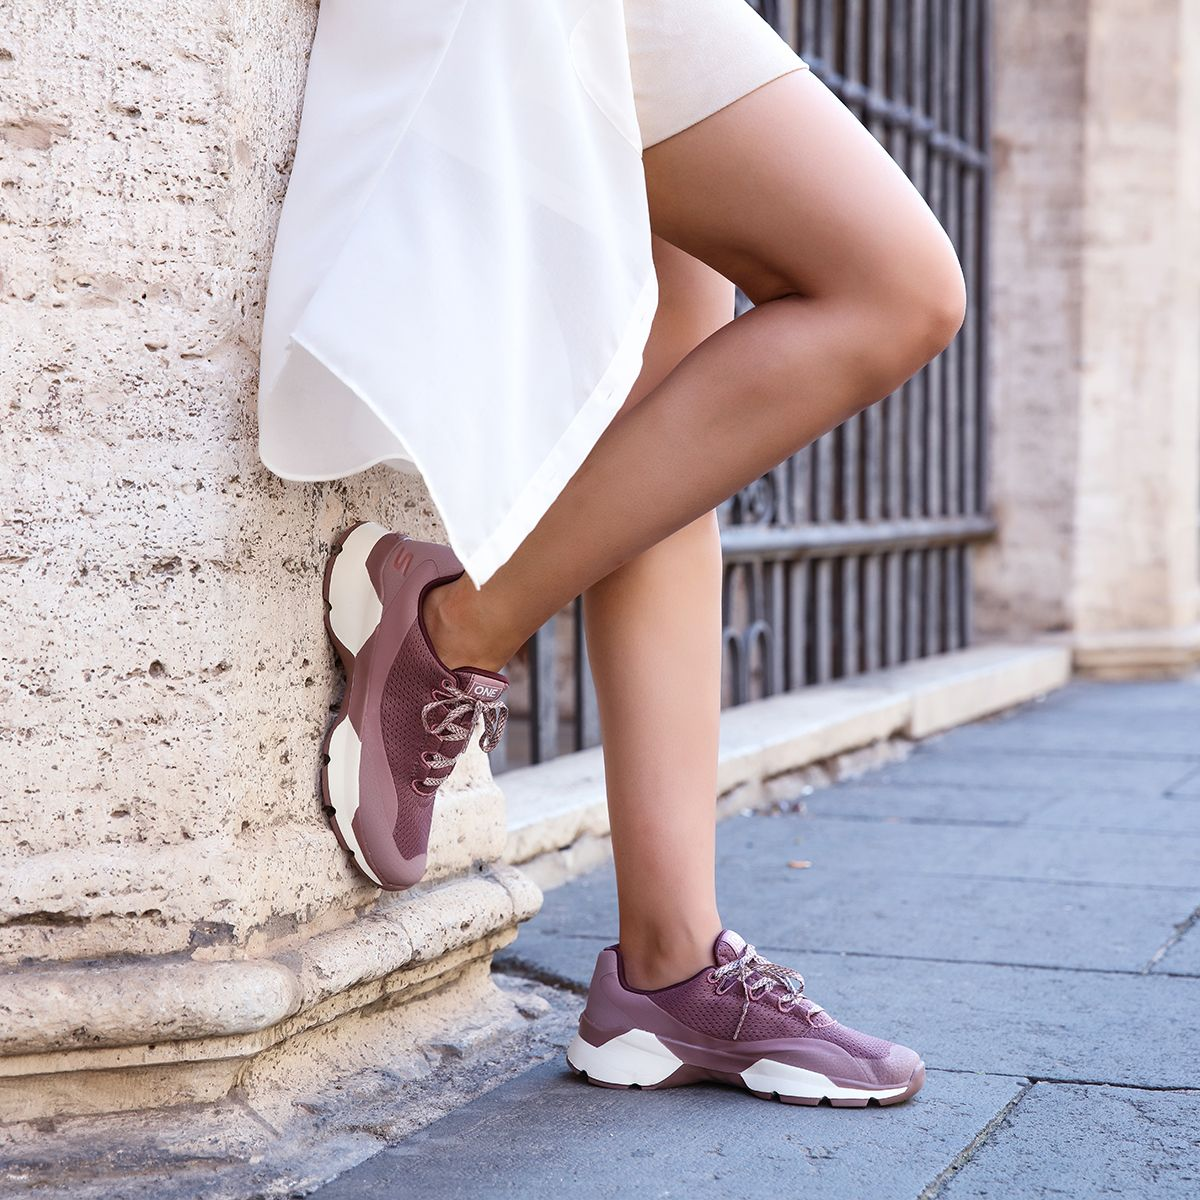 SKECHERS Roaming around #Rome in #Skechers </p>                                 <!--bof Product URL -->                                                                 <!--eof Product URL -->                                 <!--bof Quantity Discounts table -->                                                                 <!--eof Quantity Discounts table -->                             </div>                         </div>                                             </div>                 </div> <!--eof Product_info left wrapper -->             </div>         </div>     </section>      <section class=